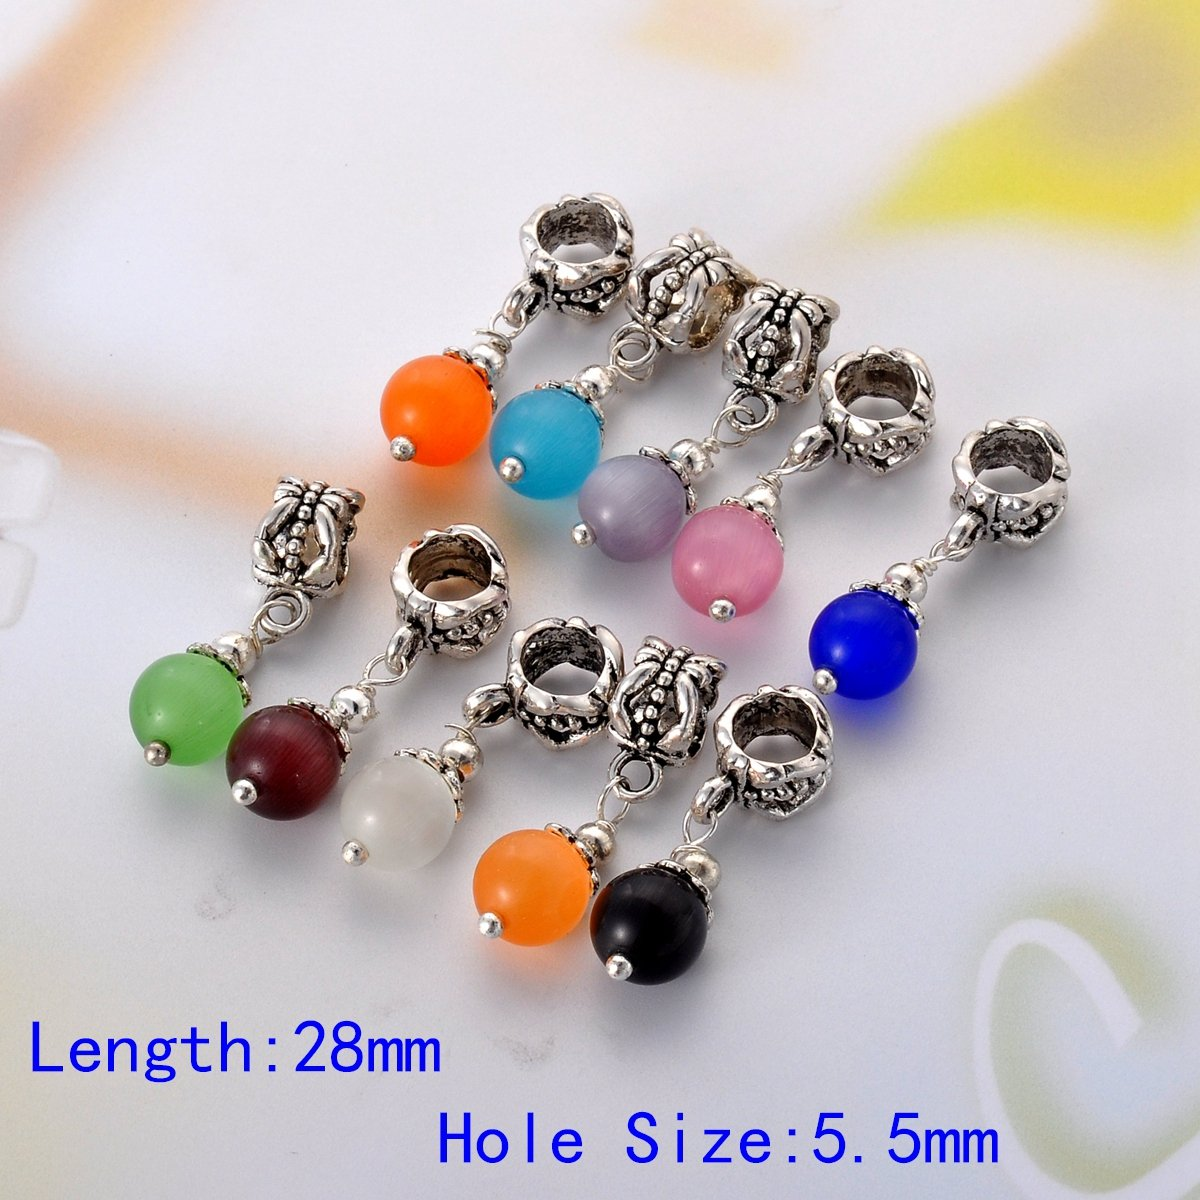 HooAMI Mixed Silver Color Dangle Beads with Birthstone for Charm Bracelet Pack of 10pcs 29mm x 10mm